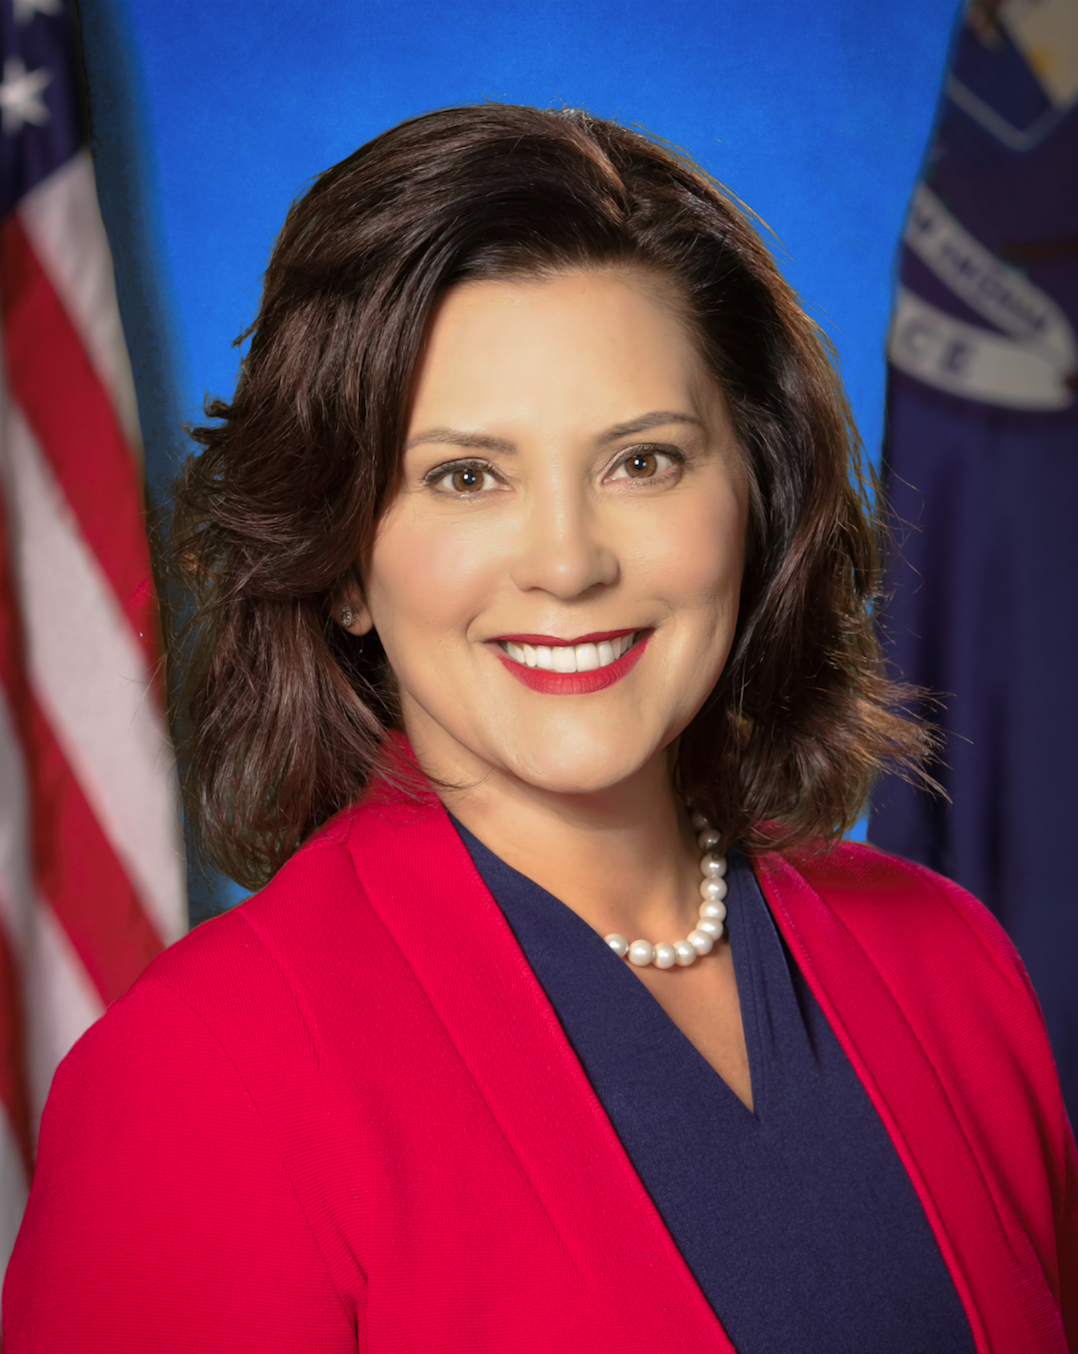 Watch live at 10:30: Gov. Whitmer update on Michigan's COVID-19 response